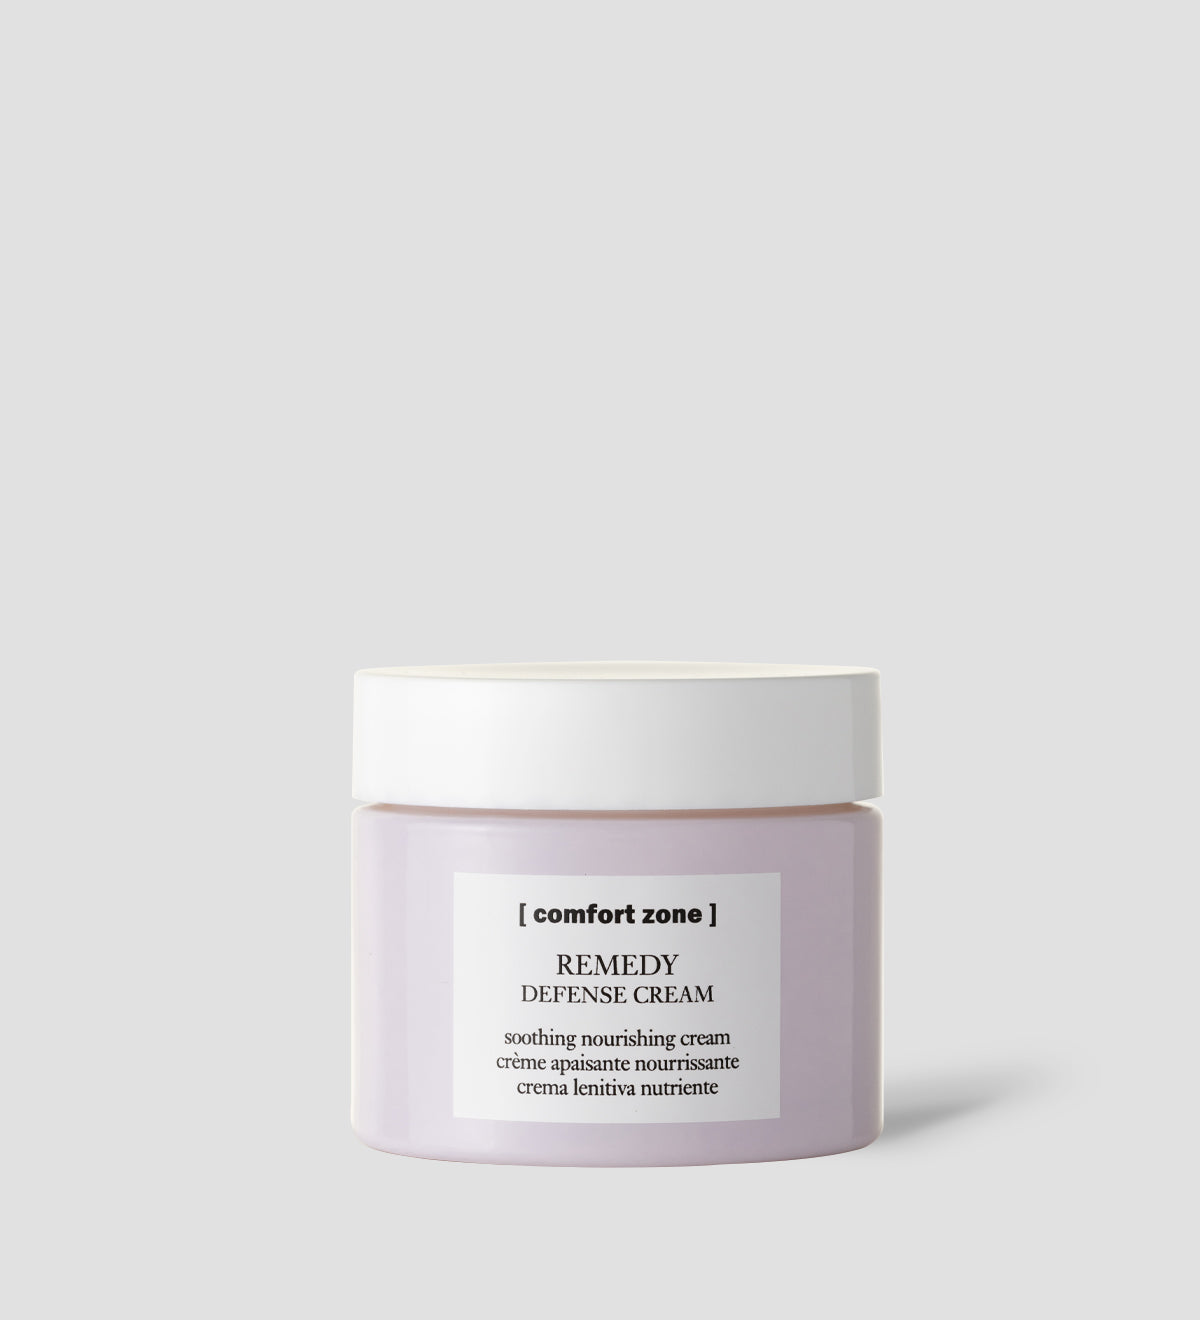 Comfort Zone: REMEDY DEFENSE CREAM Soothing nourishing cream-1